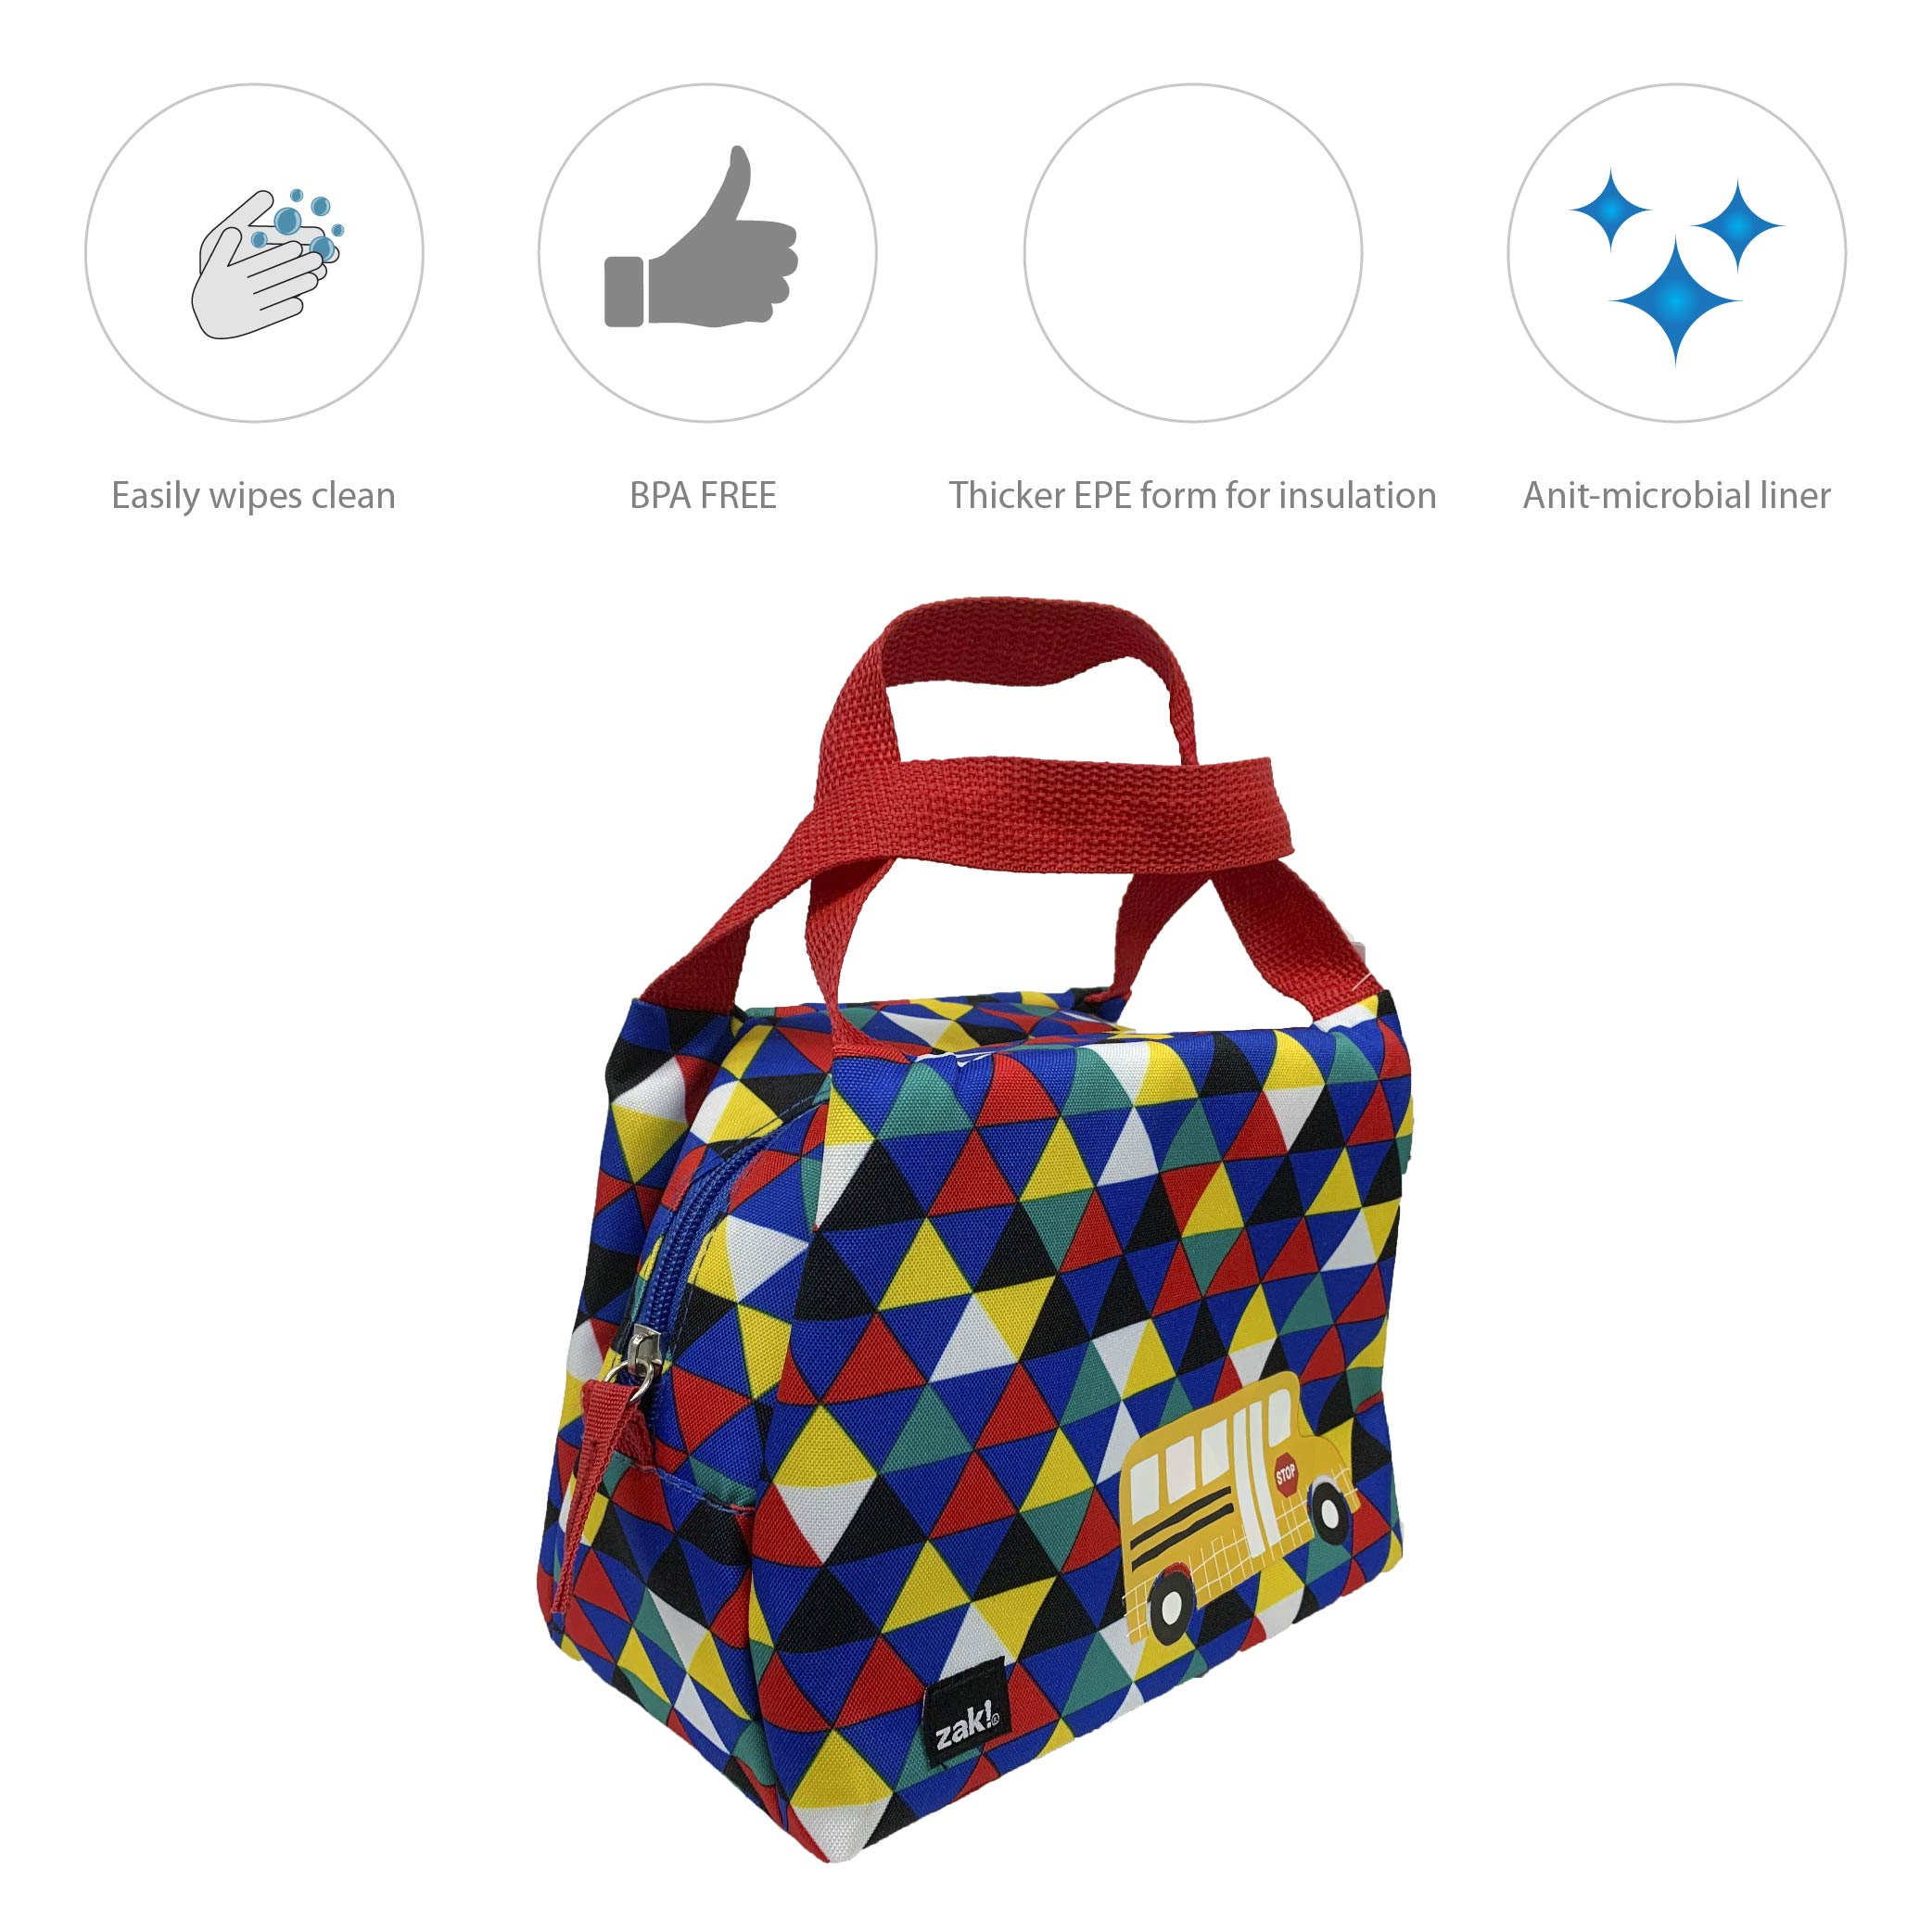 Grid Lock Purse Style Insulated Reusable Lunch Bag, Buses slideshow image 5